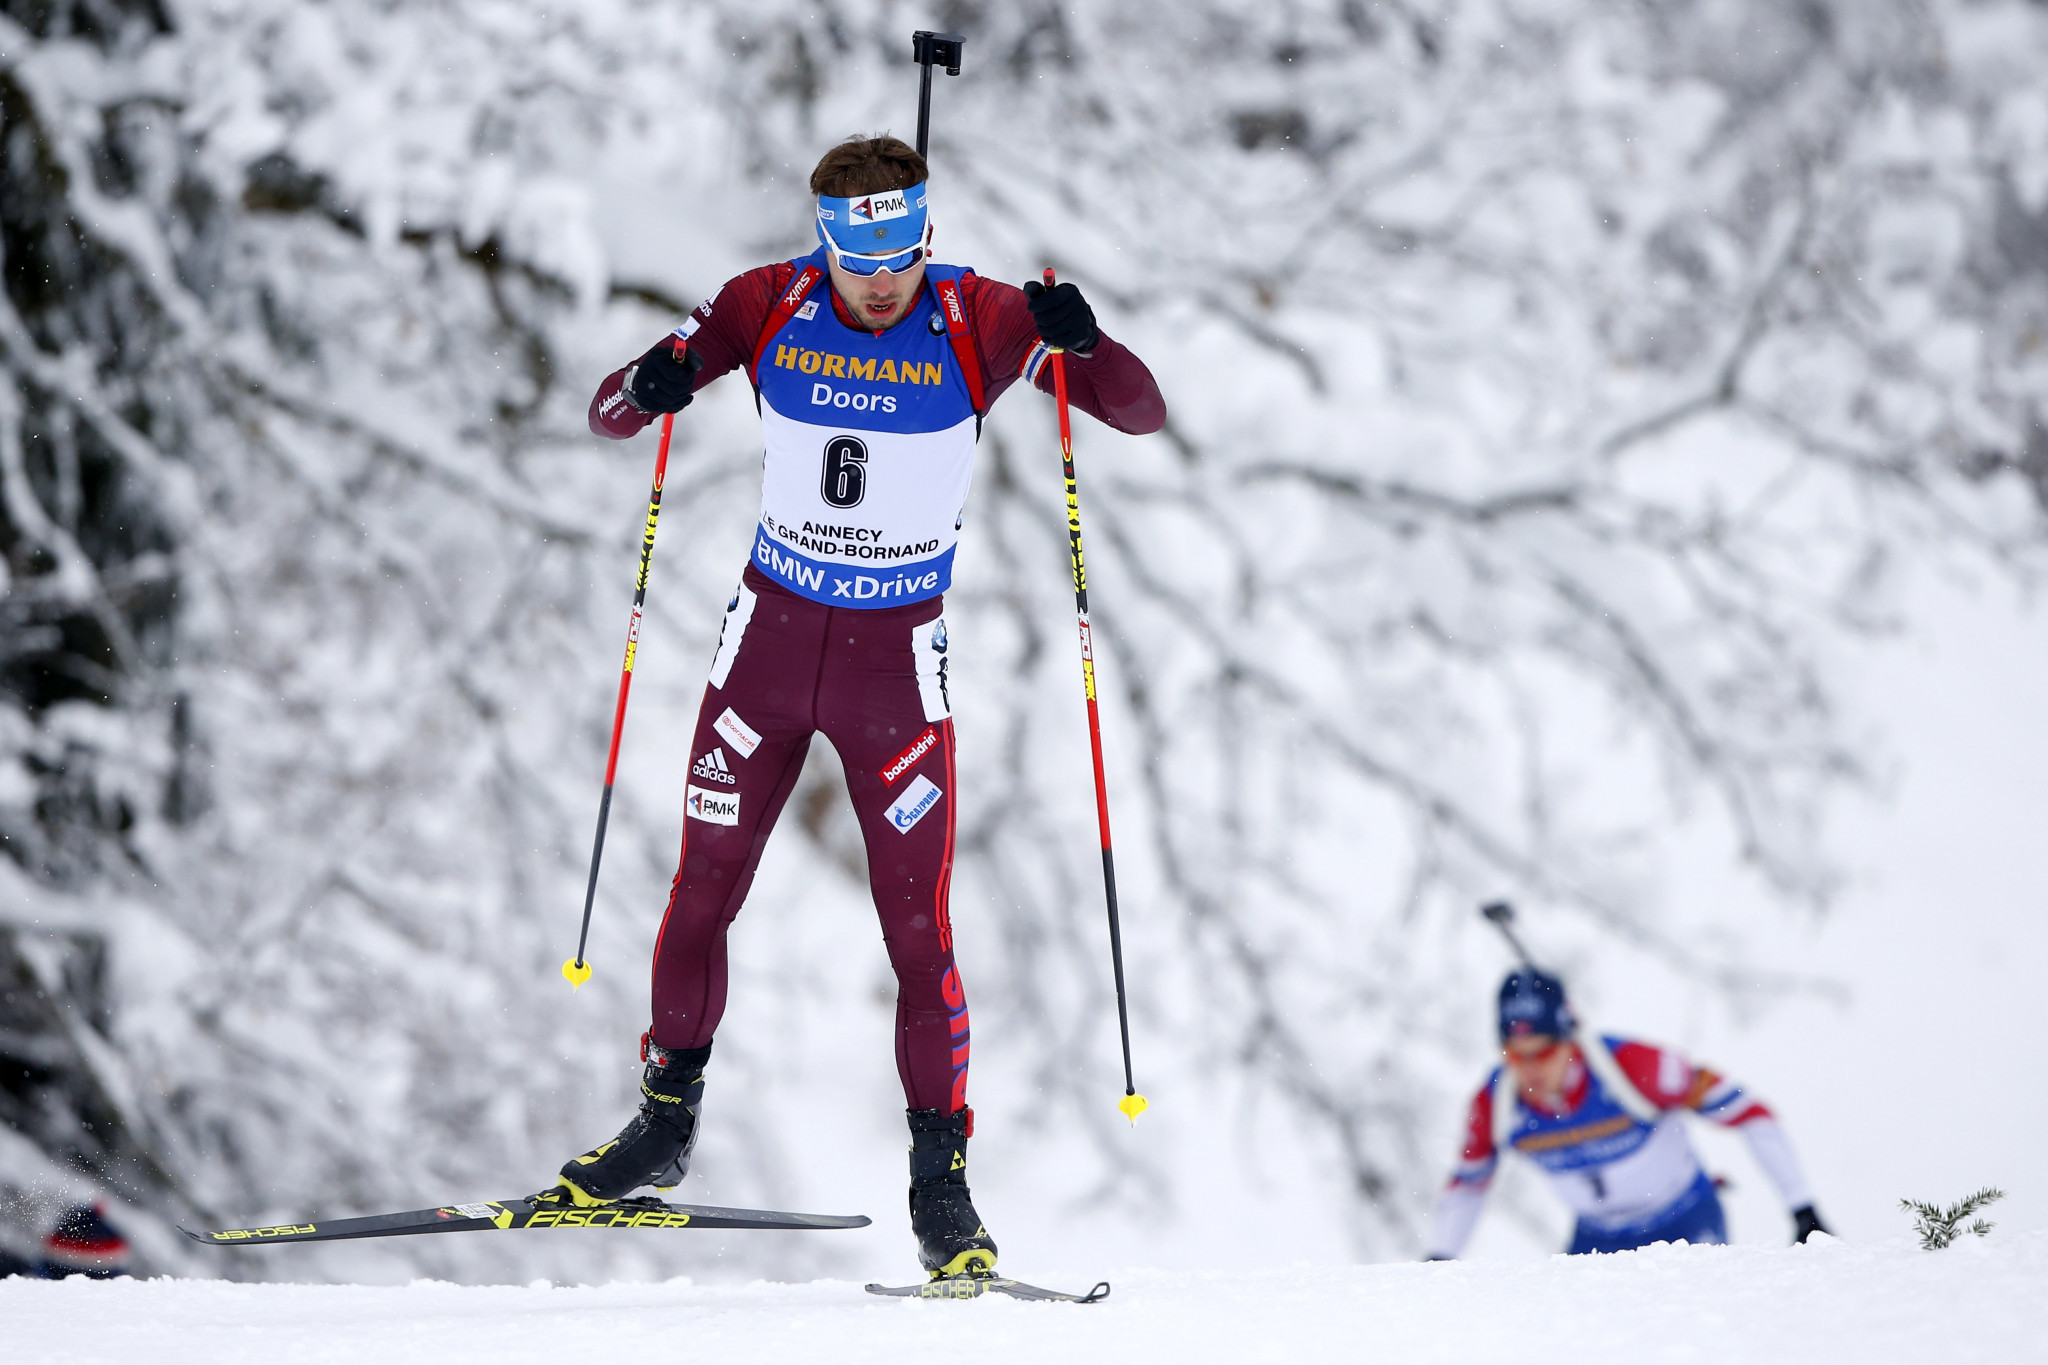 Russia aiming to end podium drought at IBU World Cup in Ruhpolding